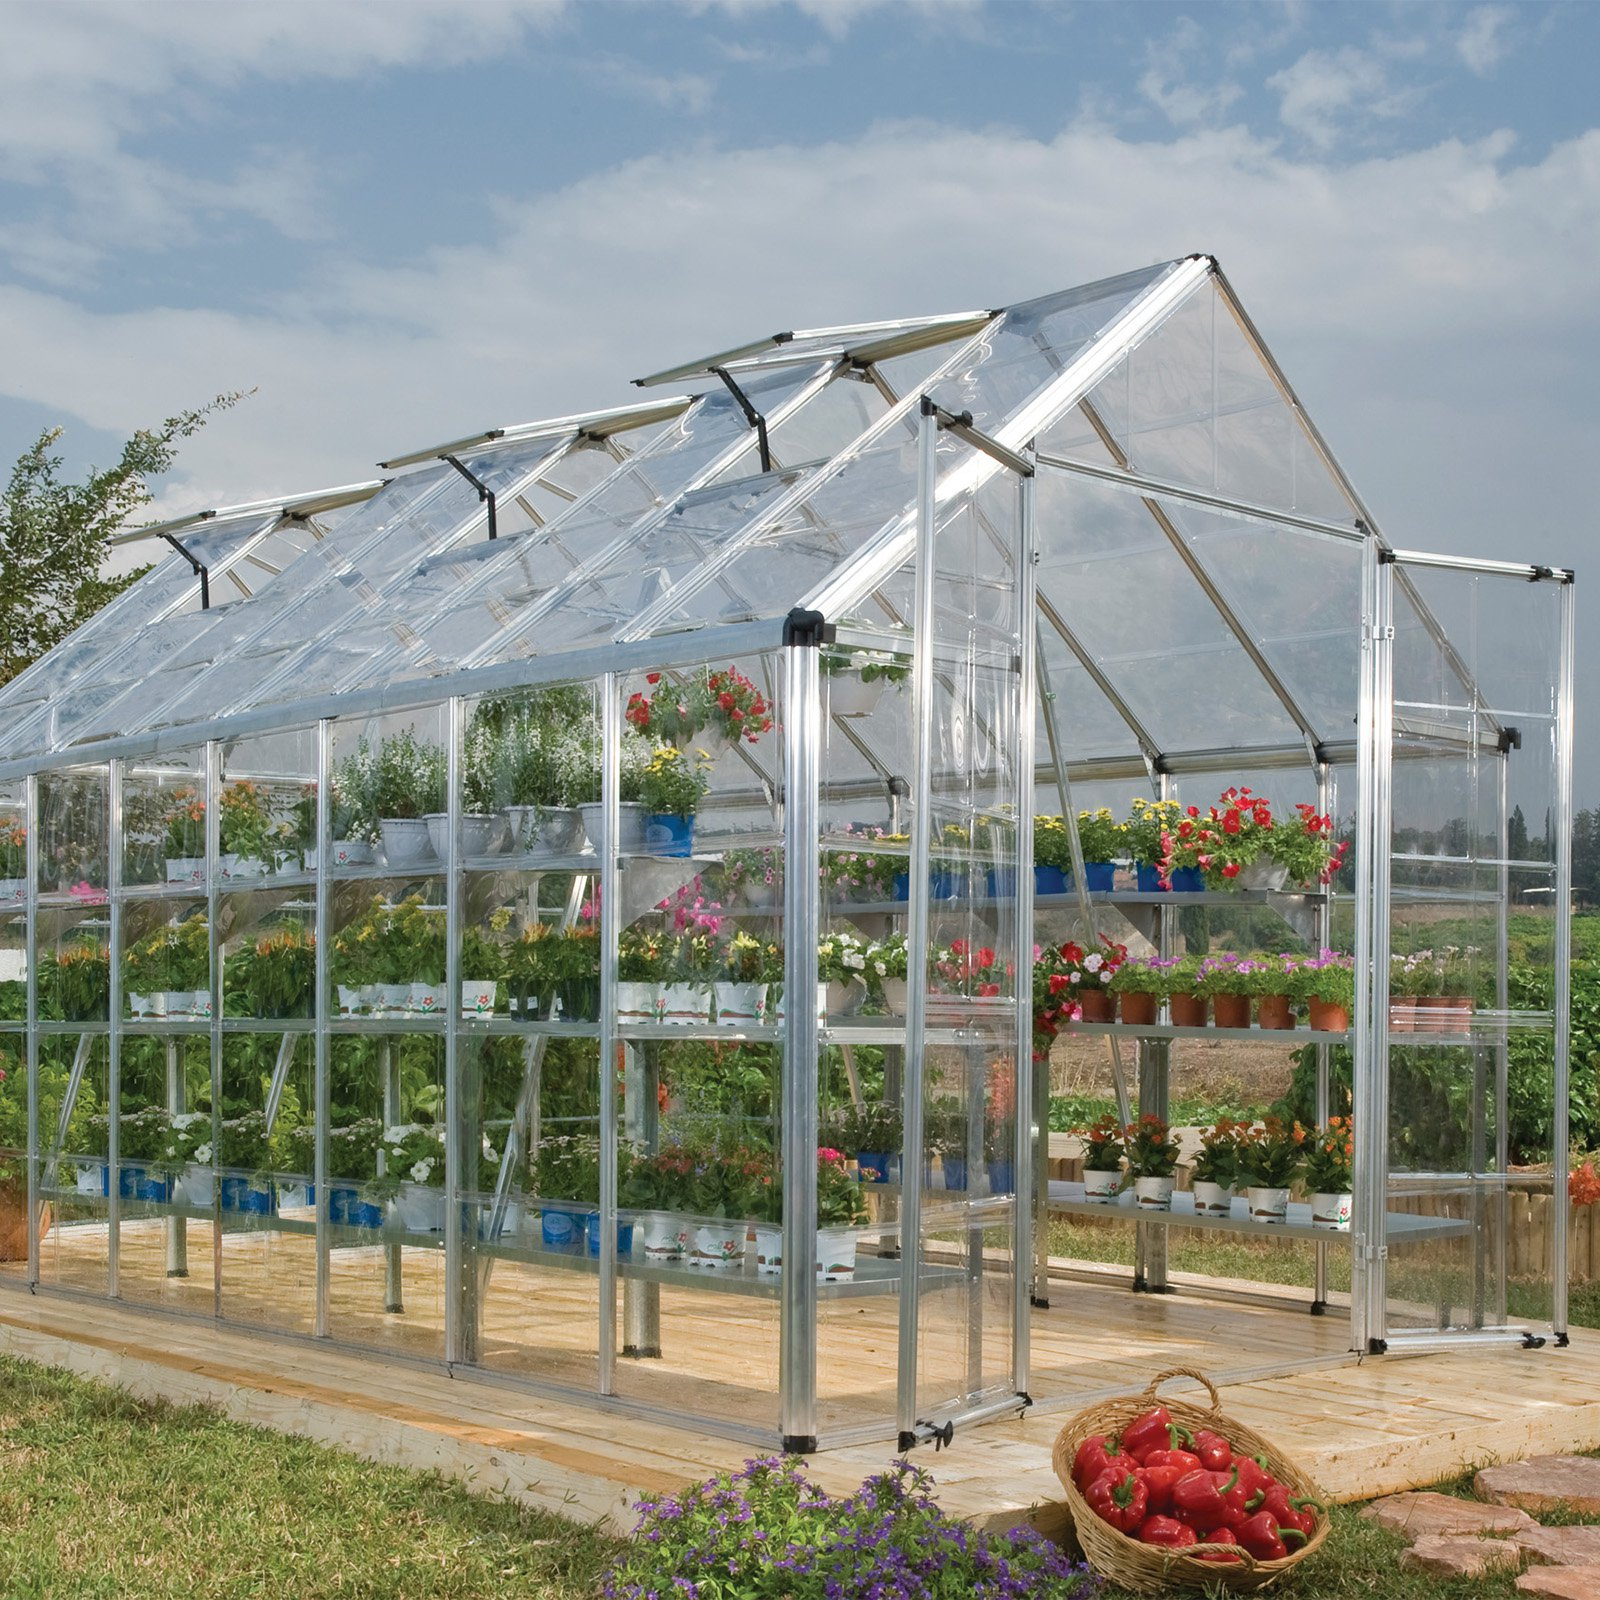 Snap and Grow 8' x 16' Silver Frame Hobby Greenhouse by Palram